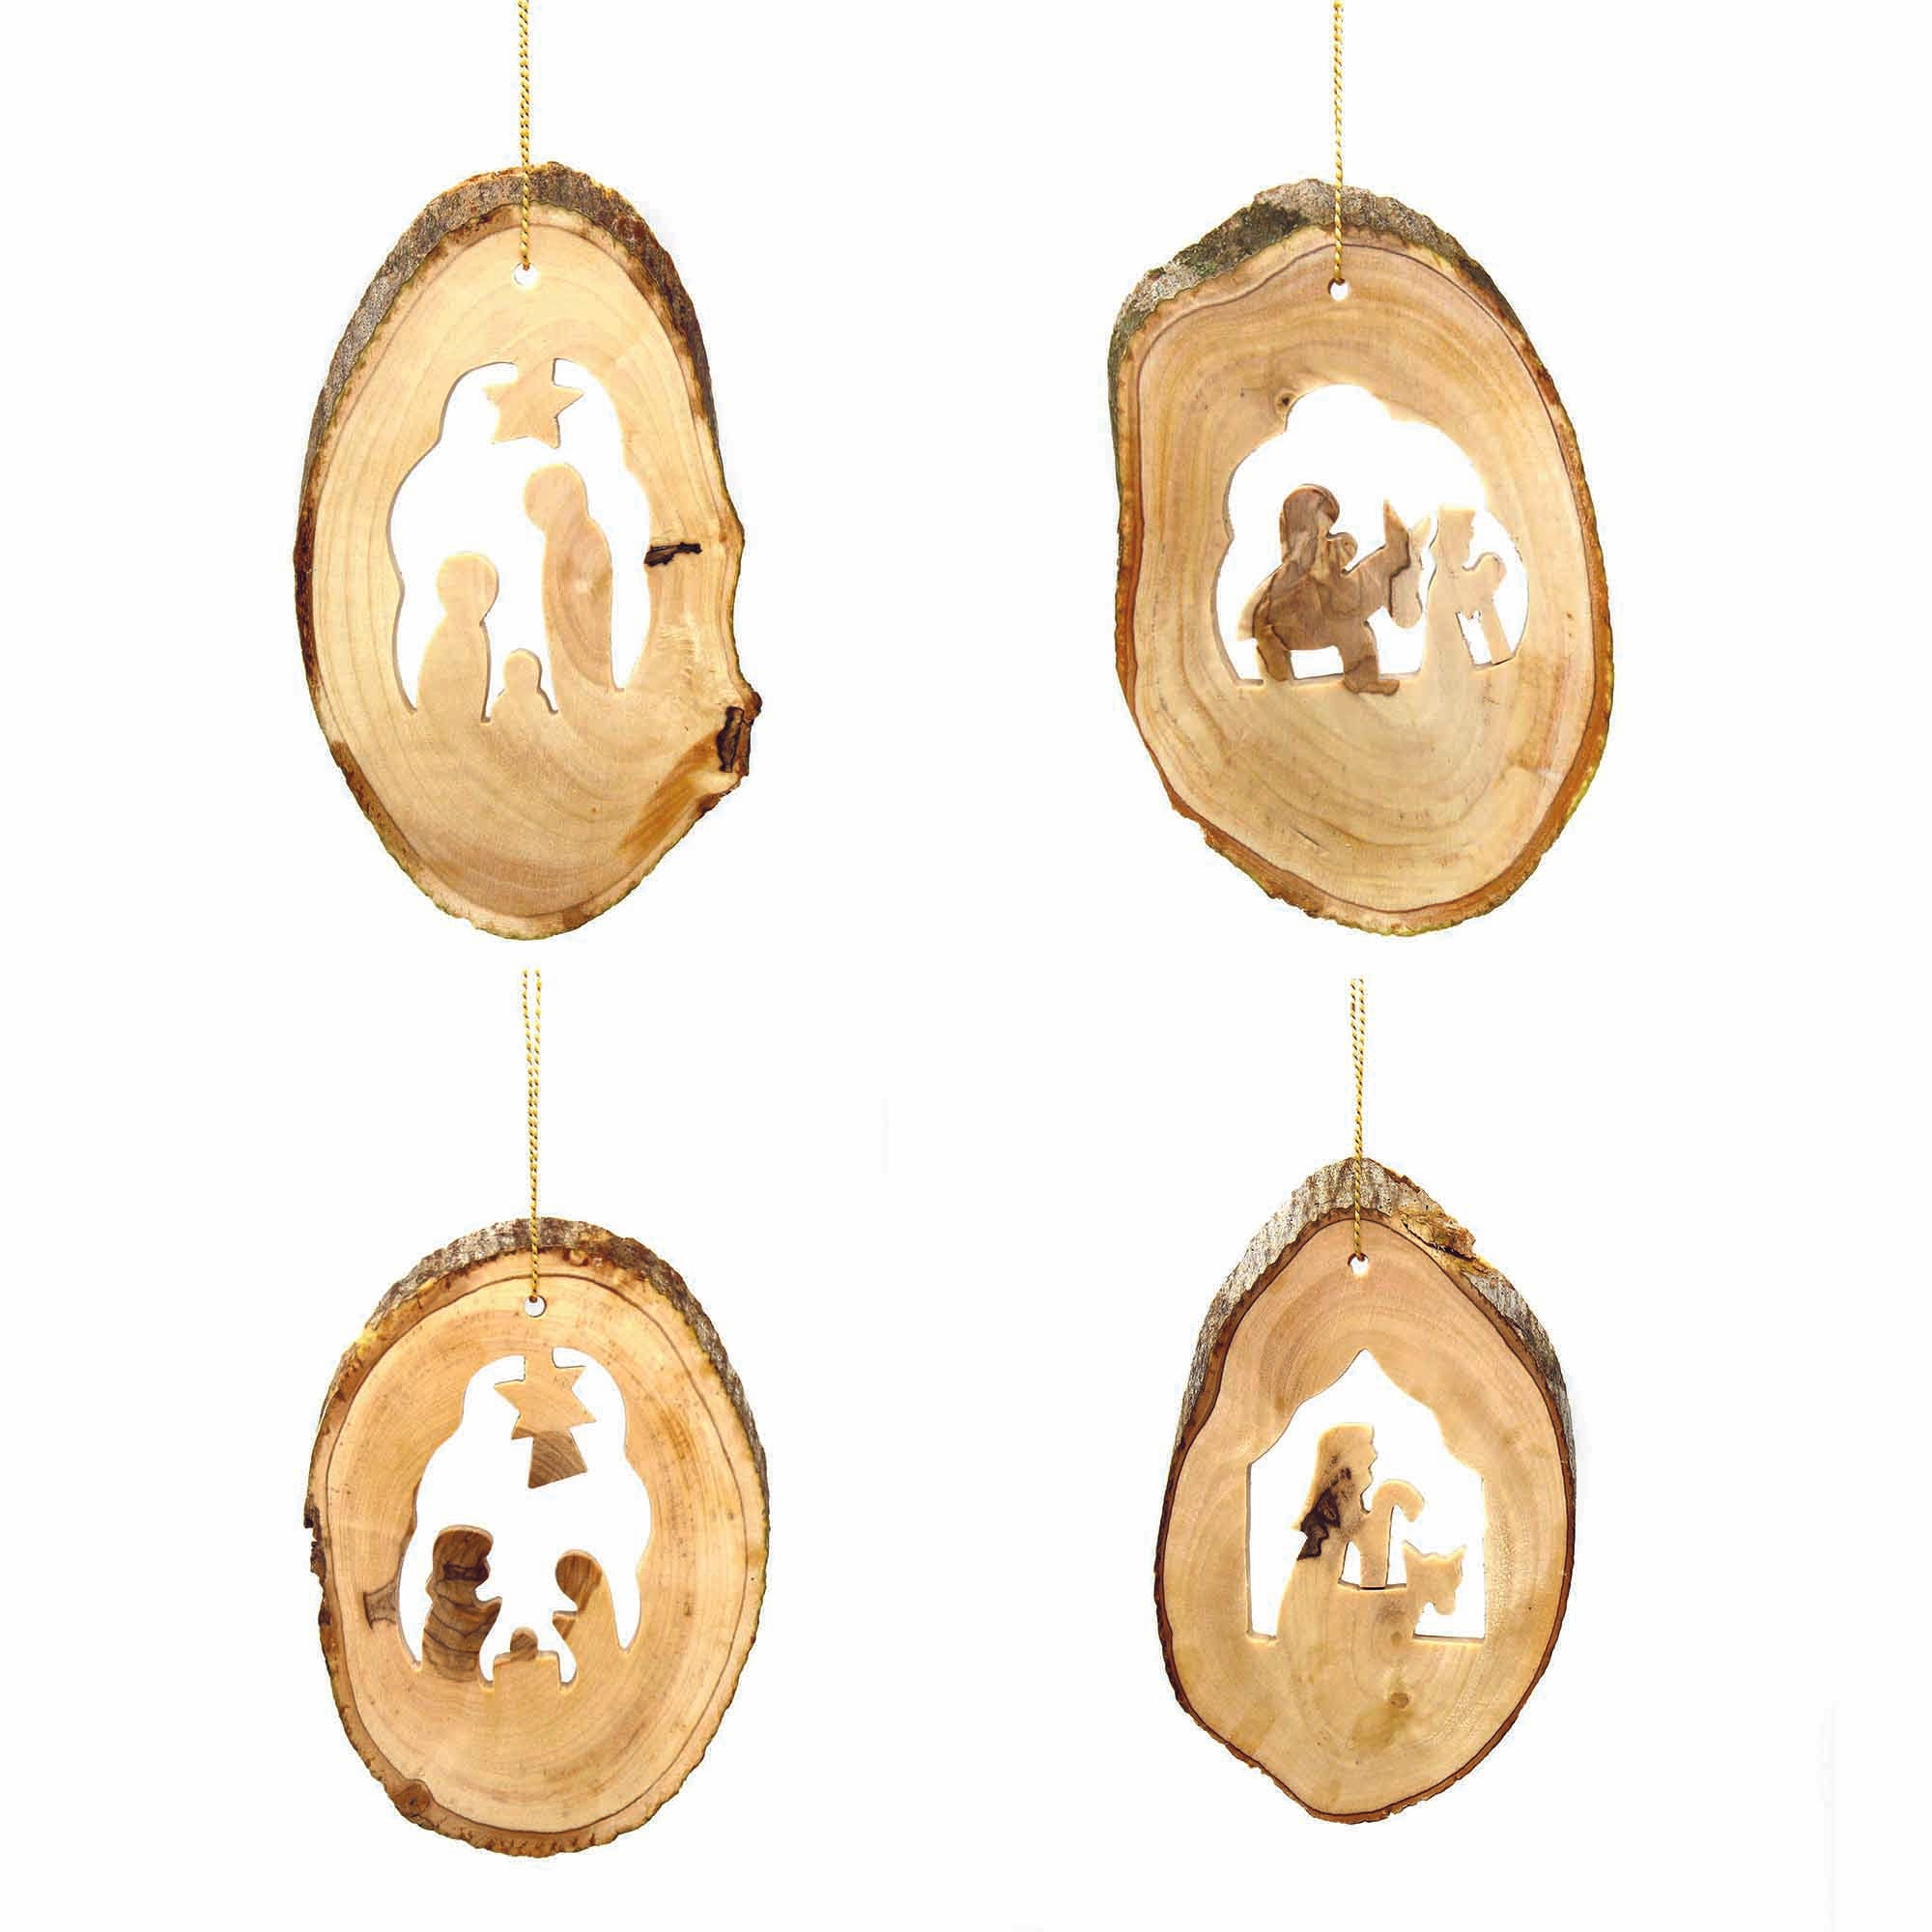 Set of 4 Olive Wood with Natural Bark Ornaments - Nativities